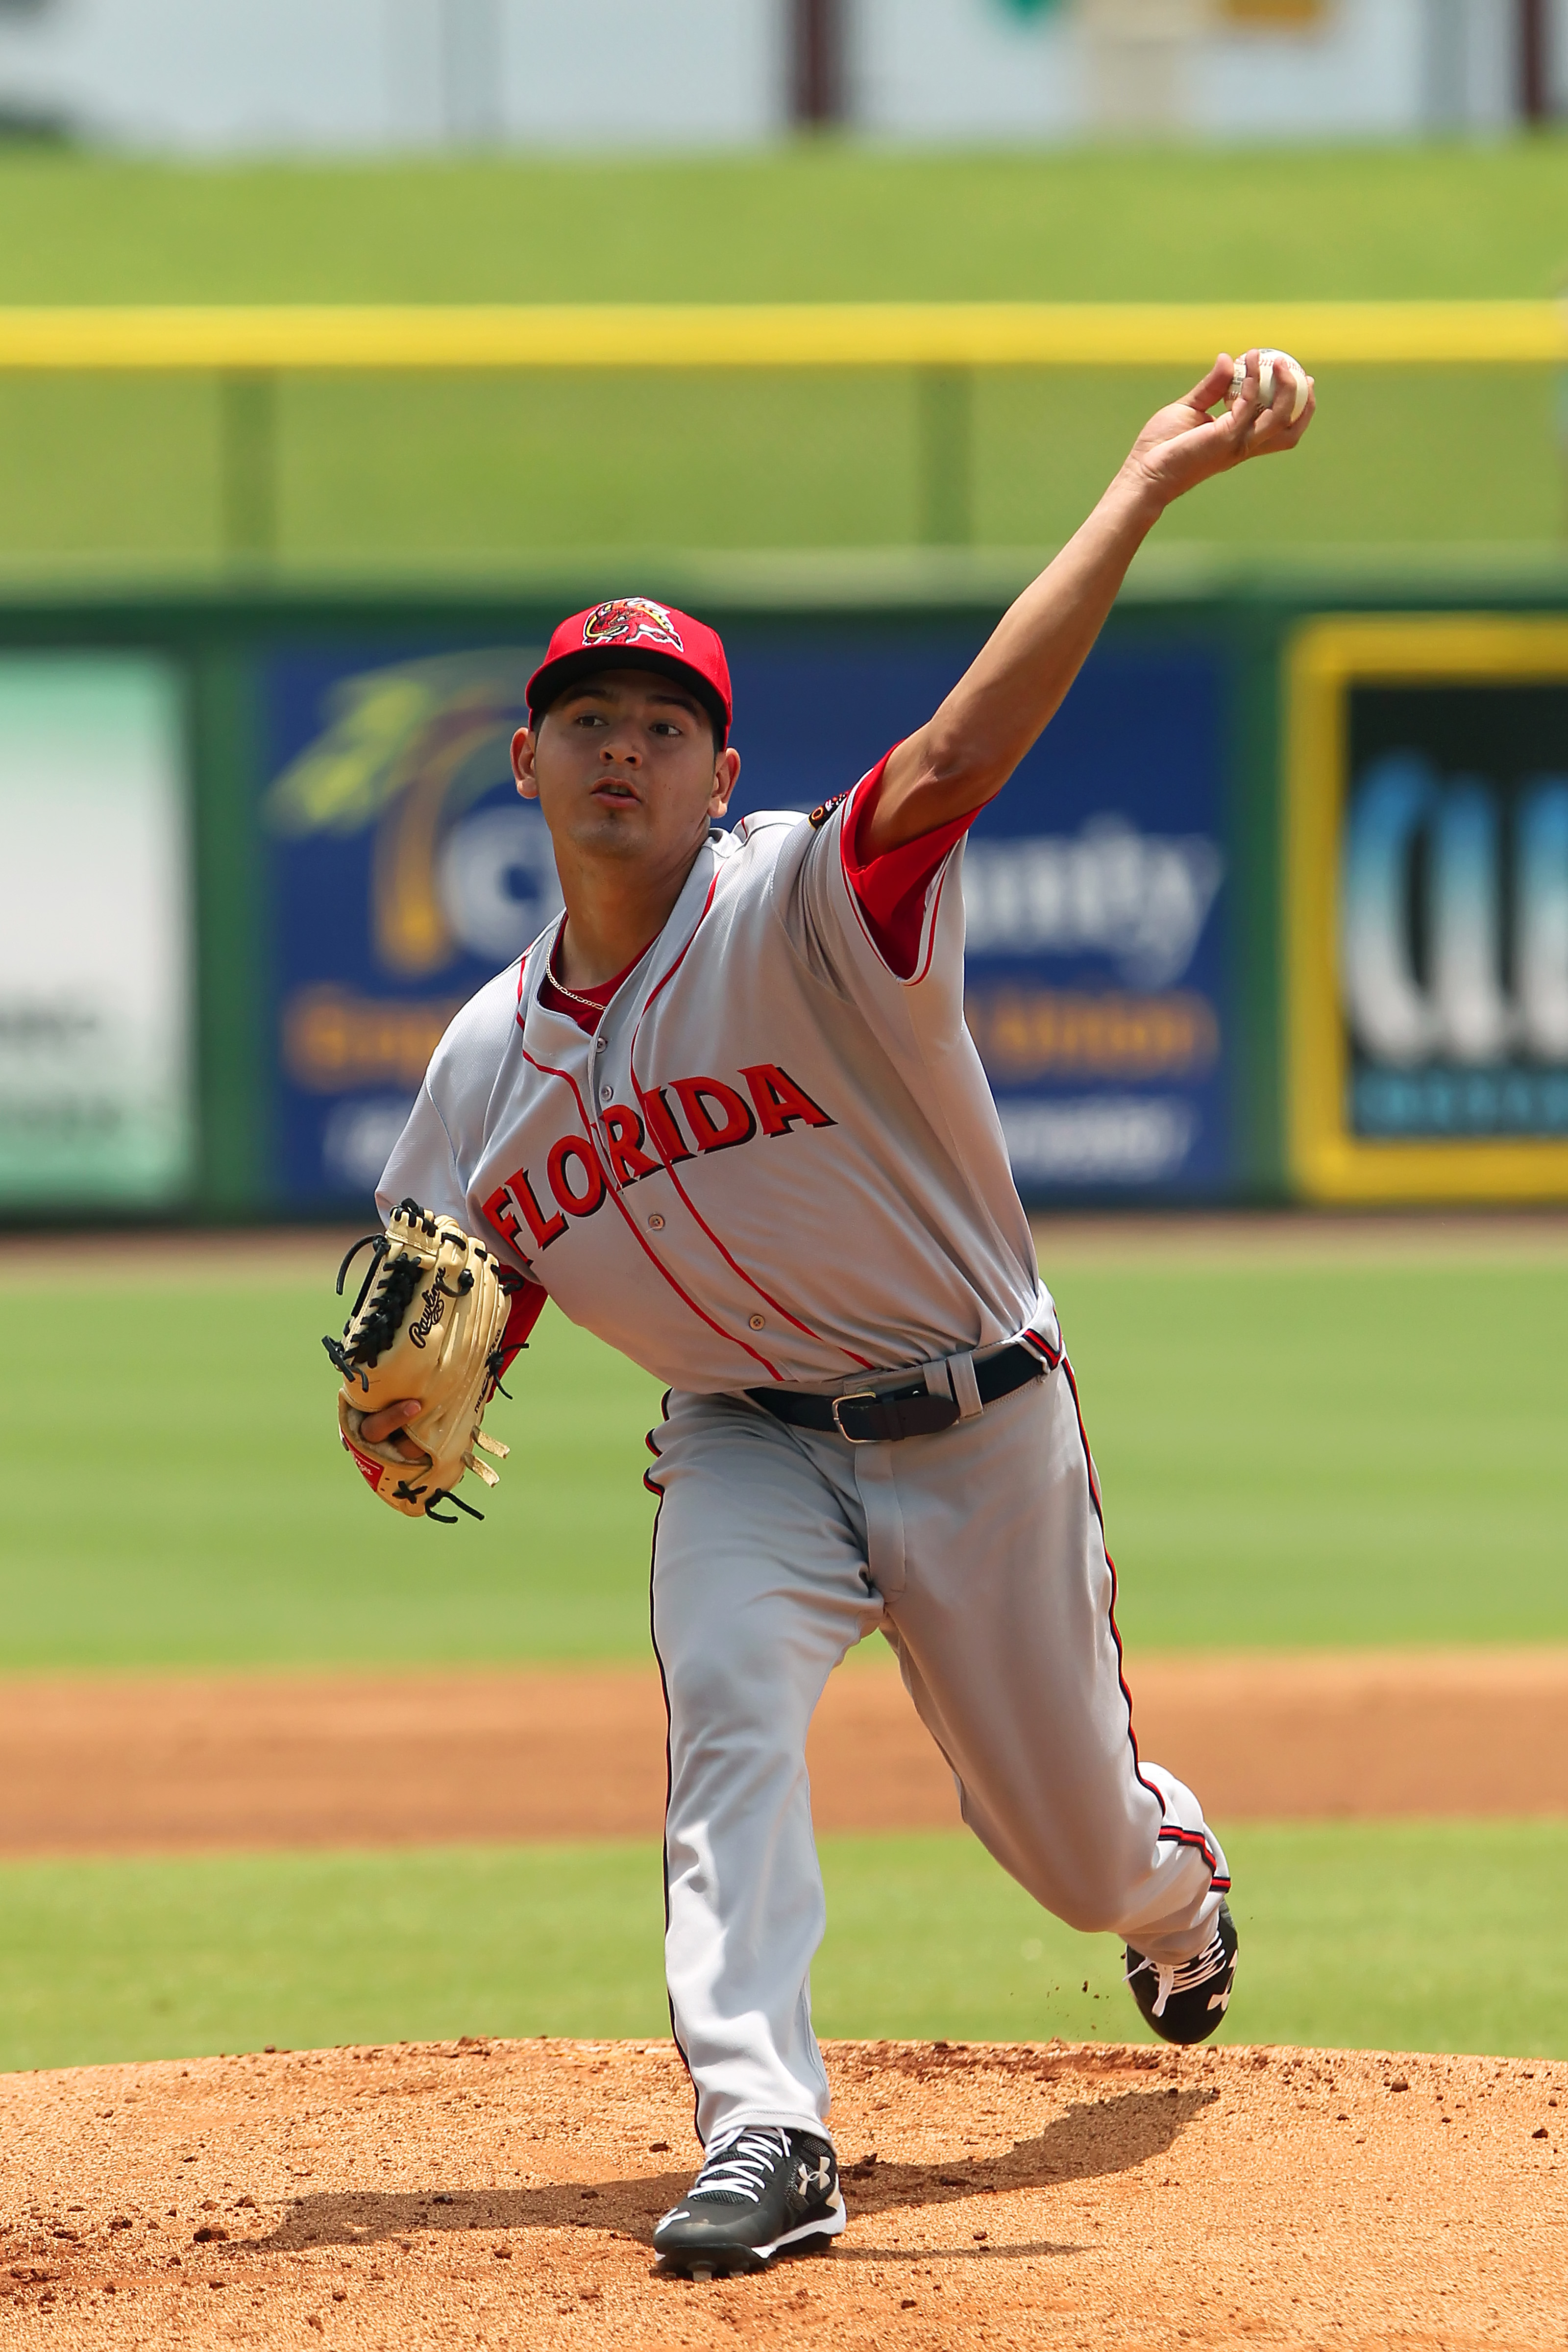 MiLB: JUN 03 Florida State League - Fire Frogs at Threshers